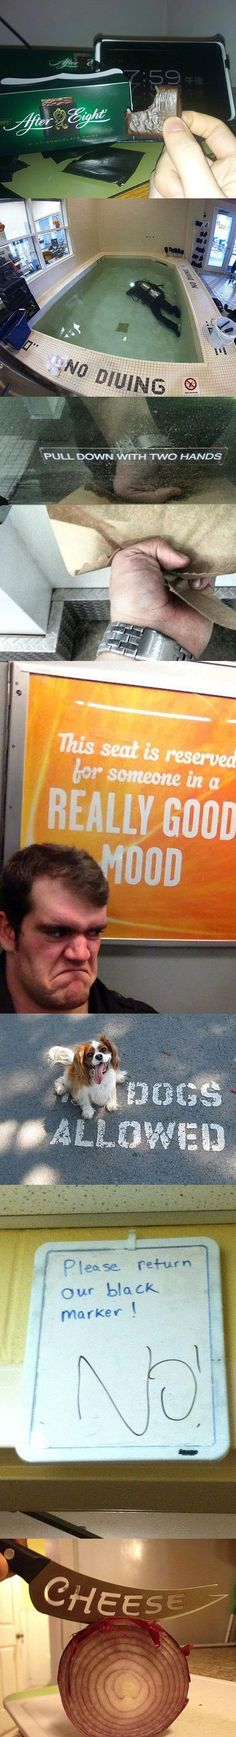 """This seat is reserved for someone in a really good mood!"""